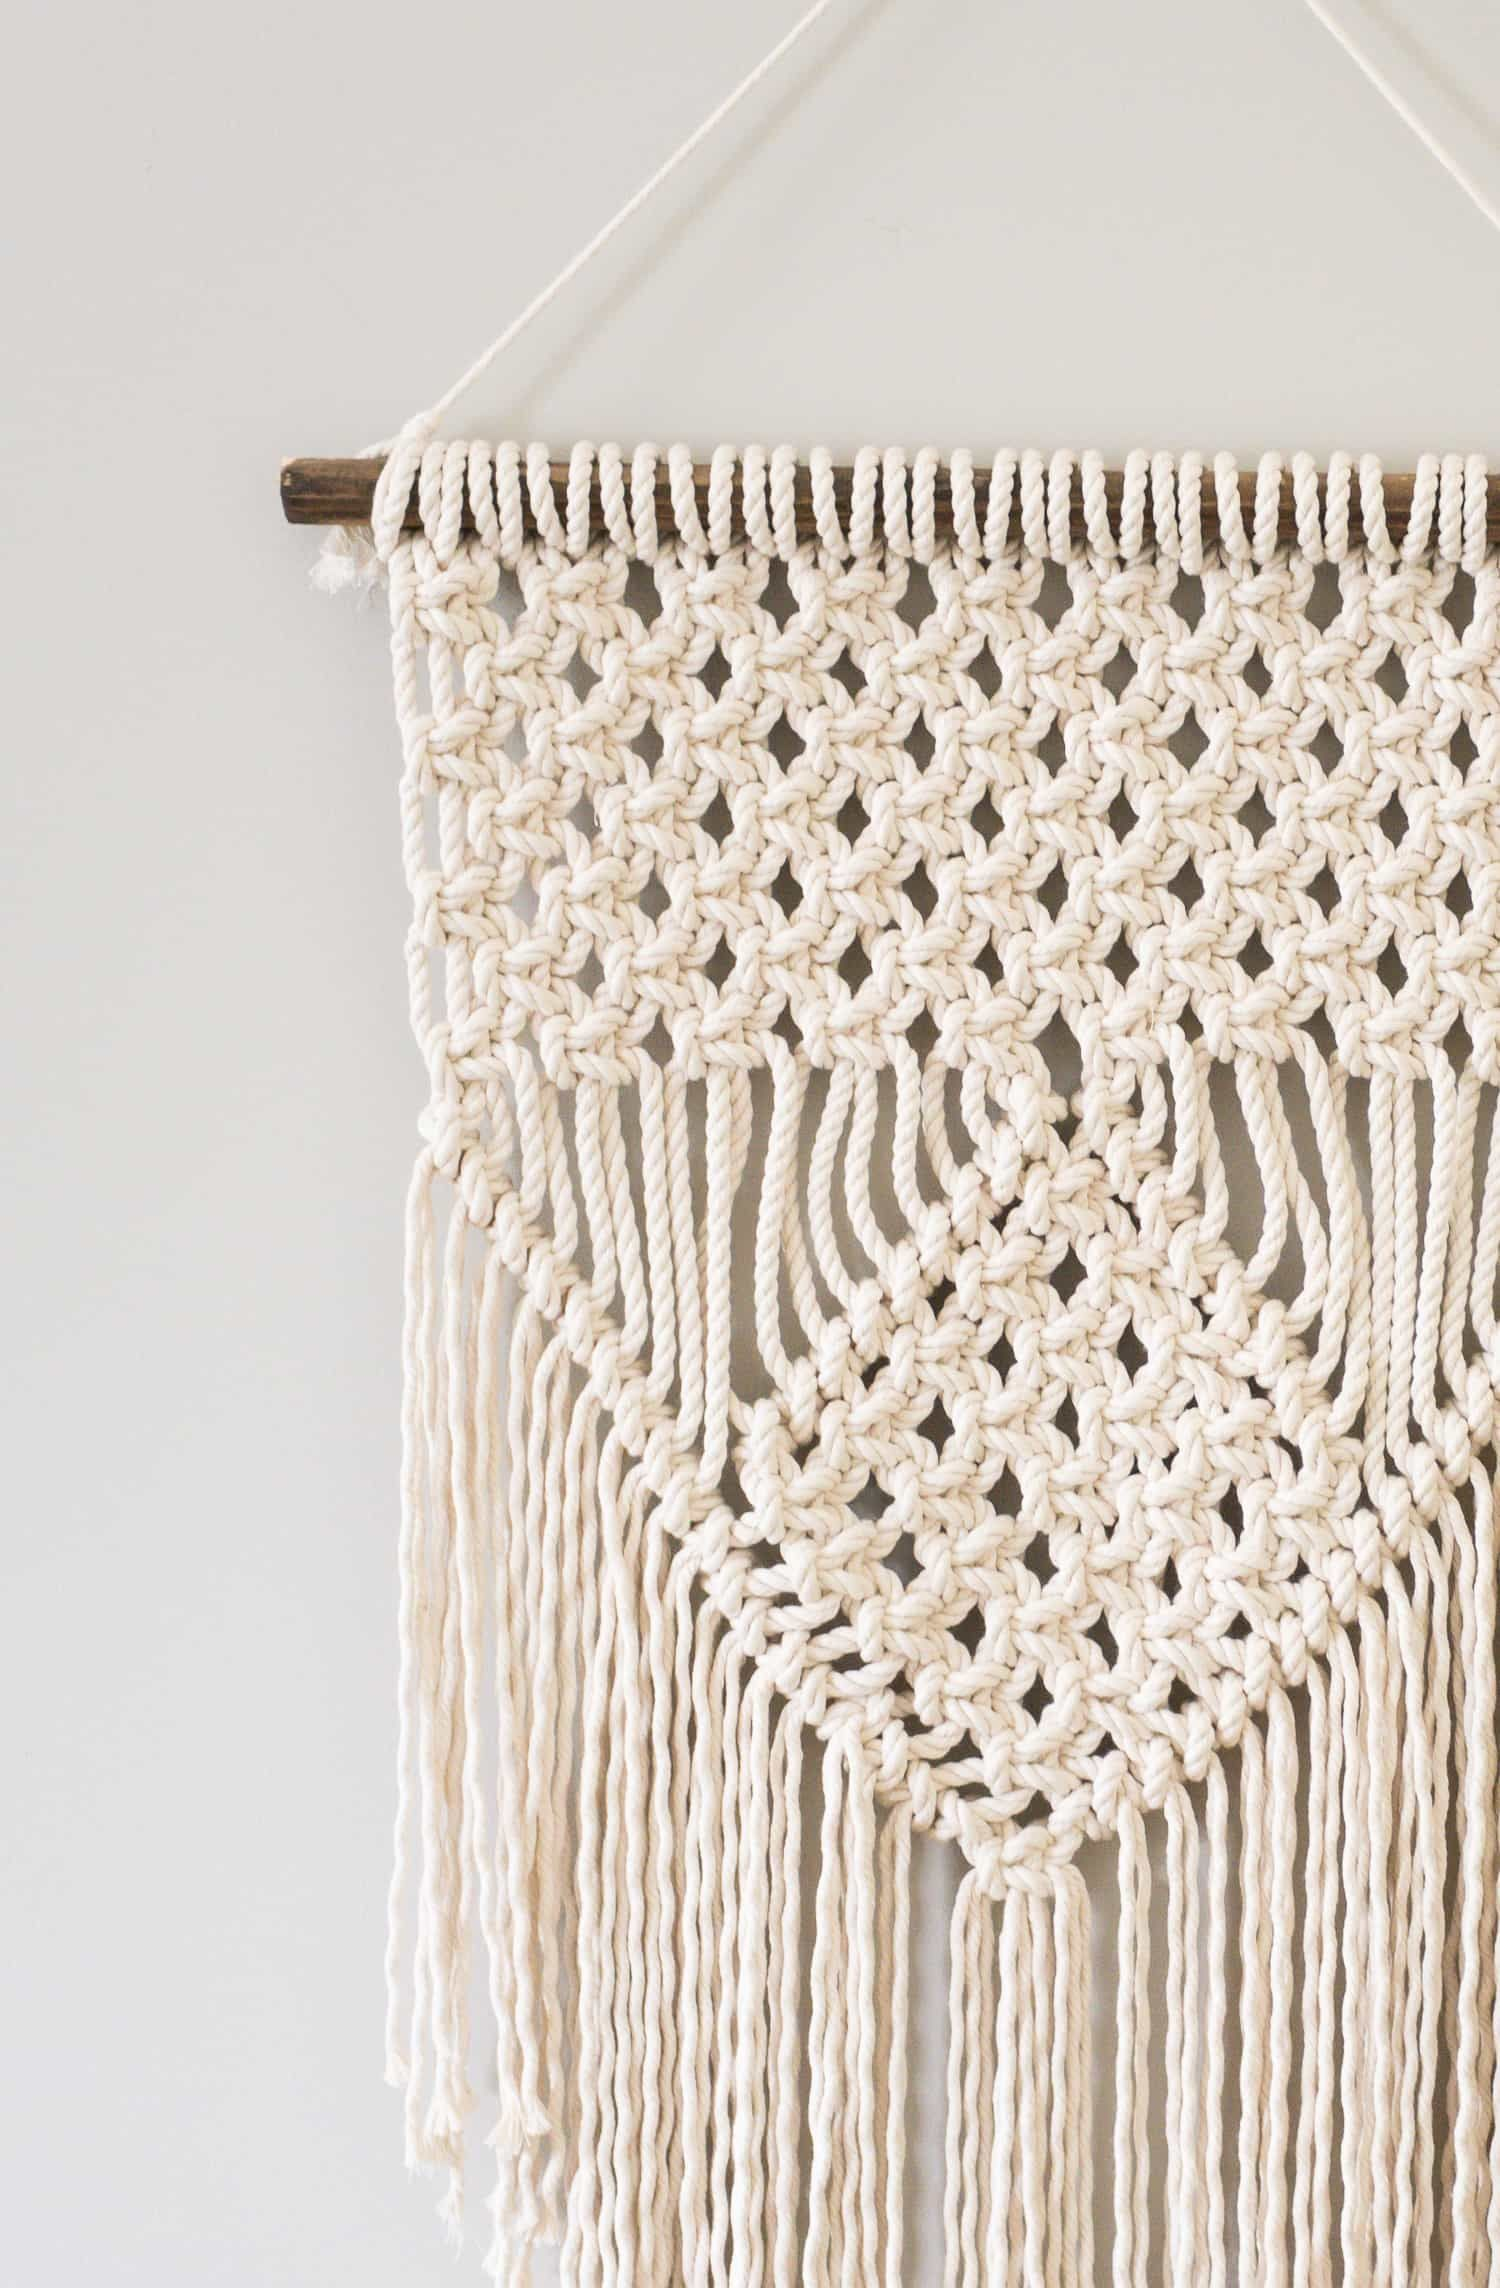 Learn Three Basic Macrame Knots To Create Your Wall Hanging Macrame Wall Hanging Patterns Macrame Patterns Macrame Projects